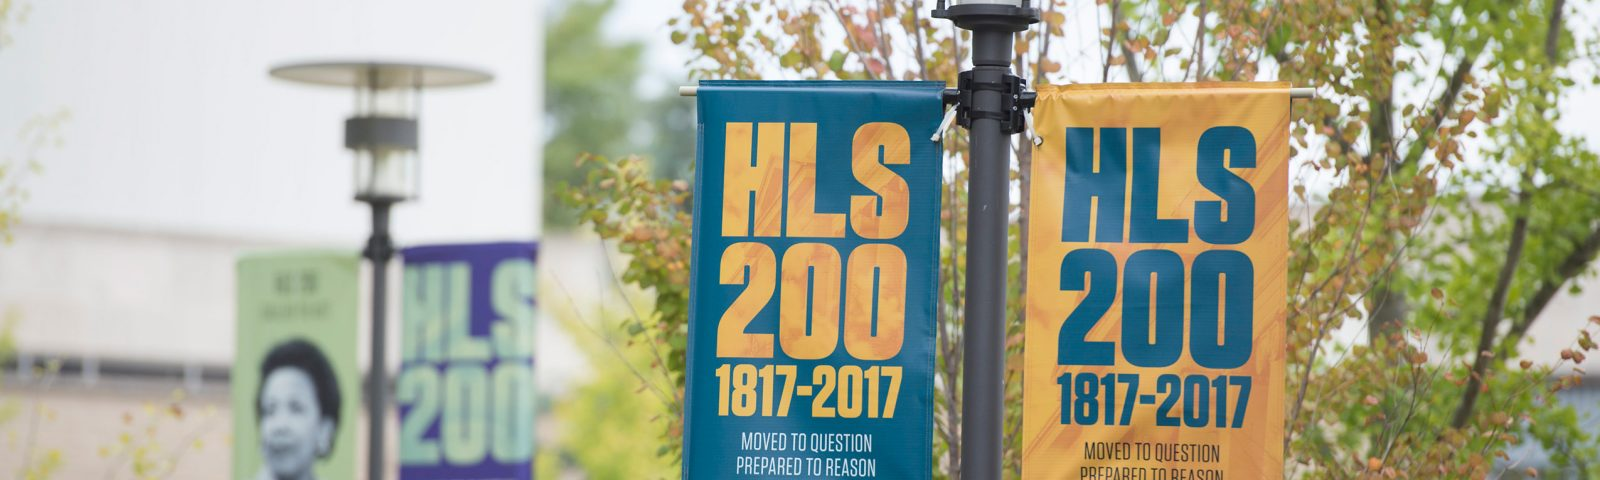 HLS 200 banners across campus